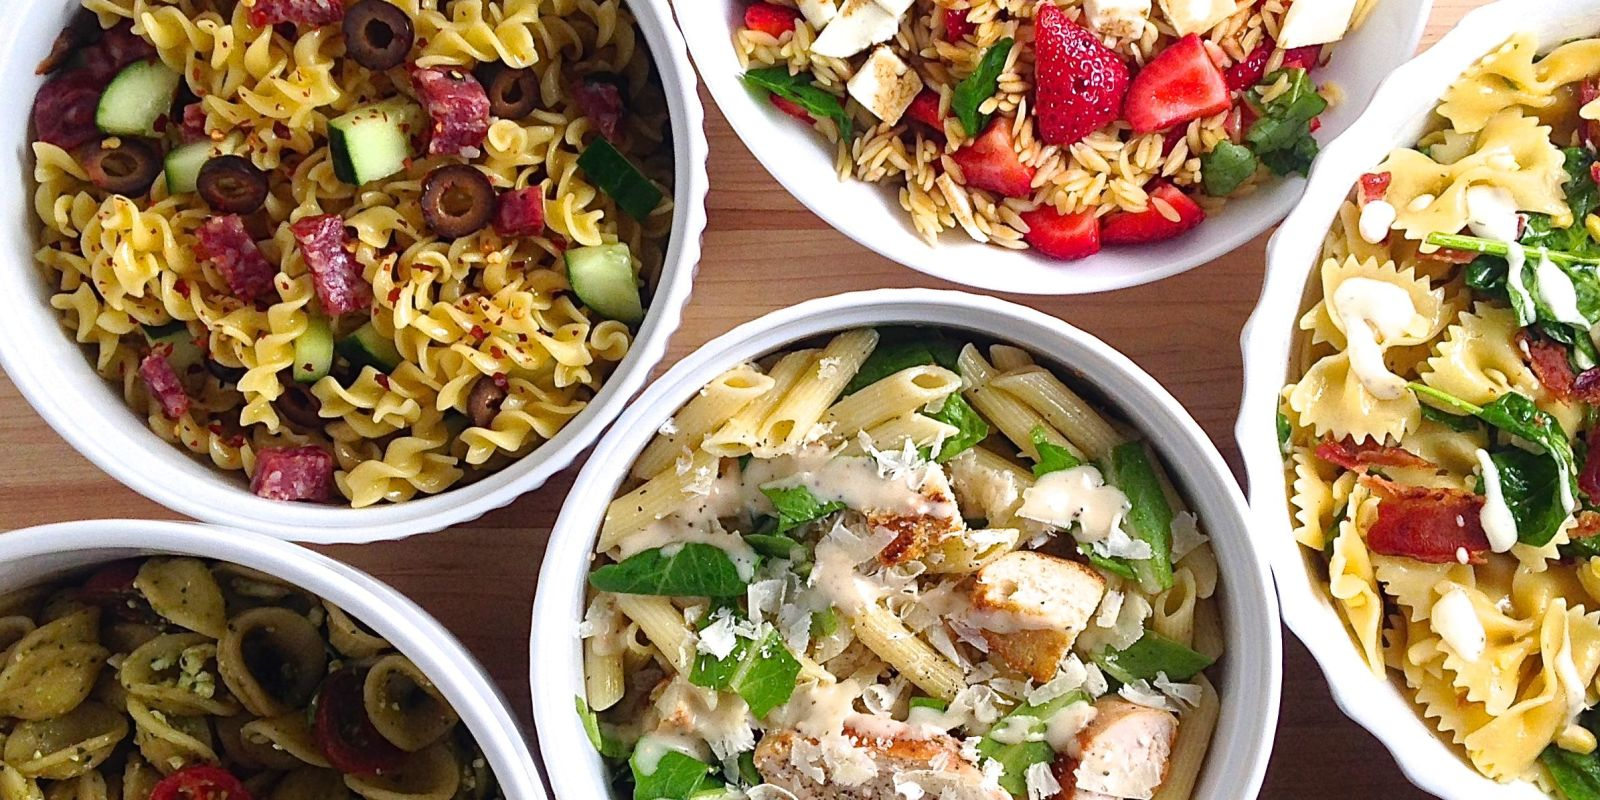 Pasta Salad Recipes - Best Recipes for Pasta Salad